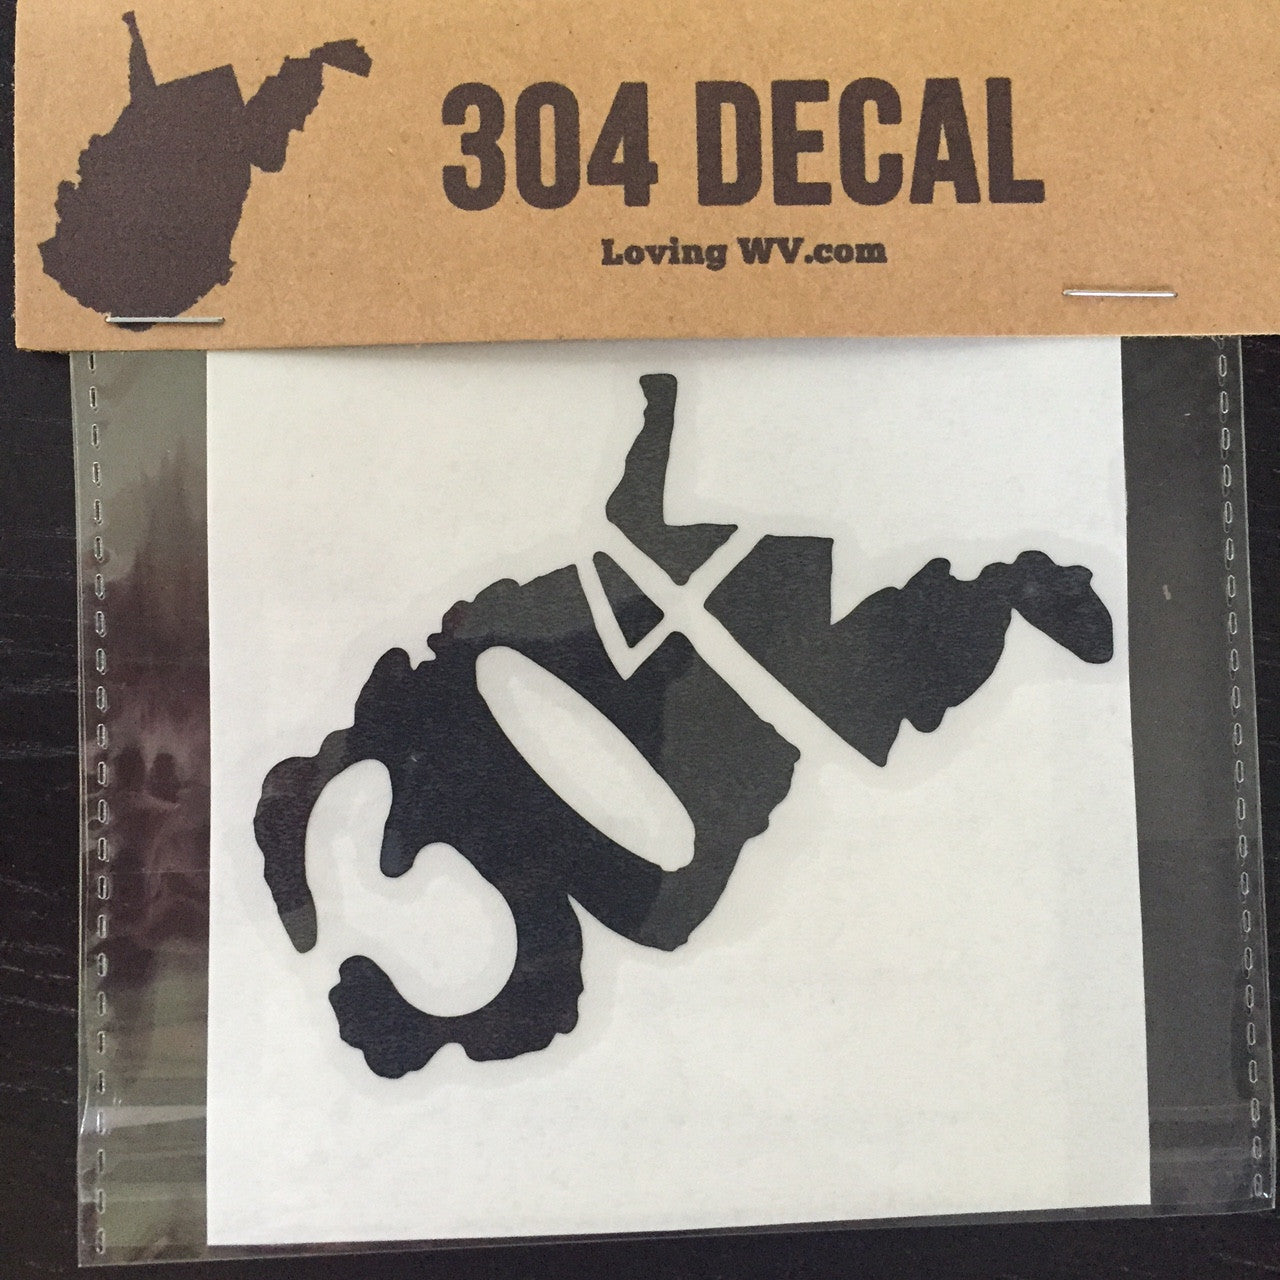 ... 304 Decal - Loving West Virginia (LovingWV) ...